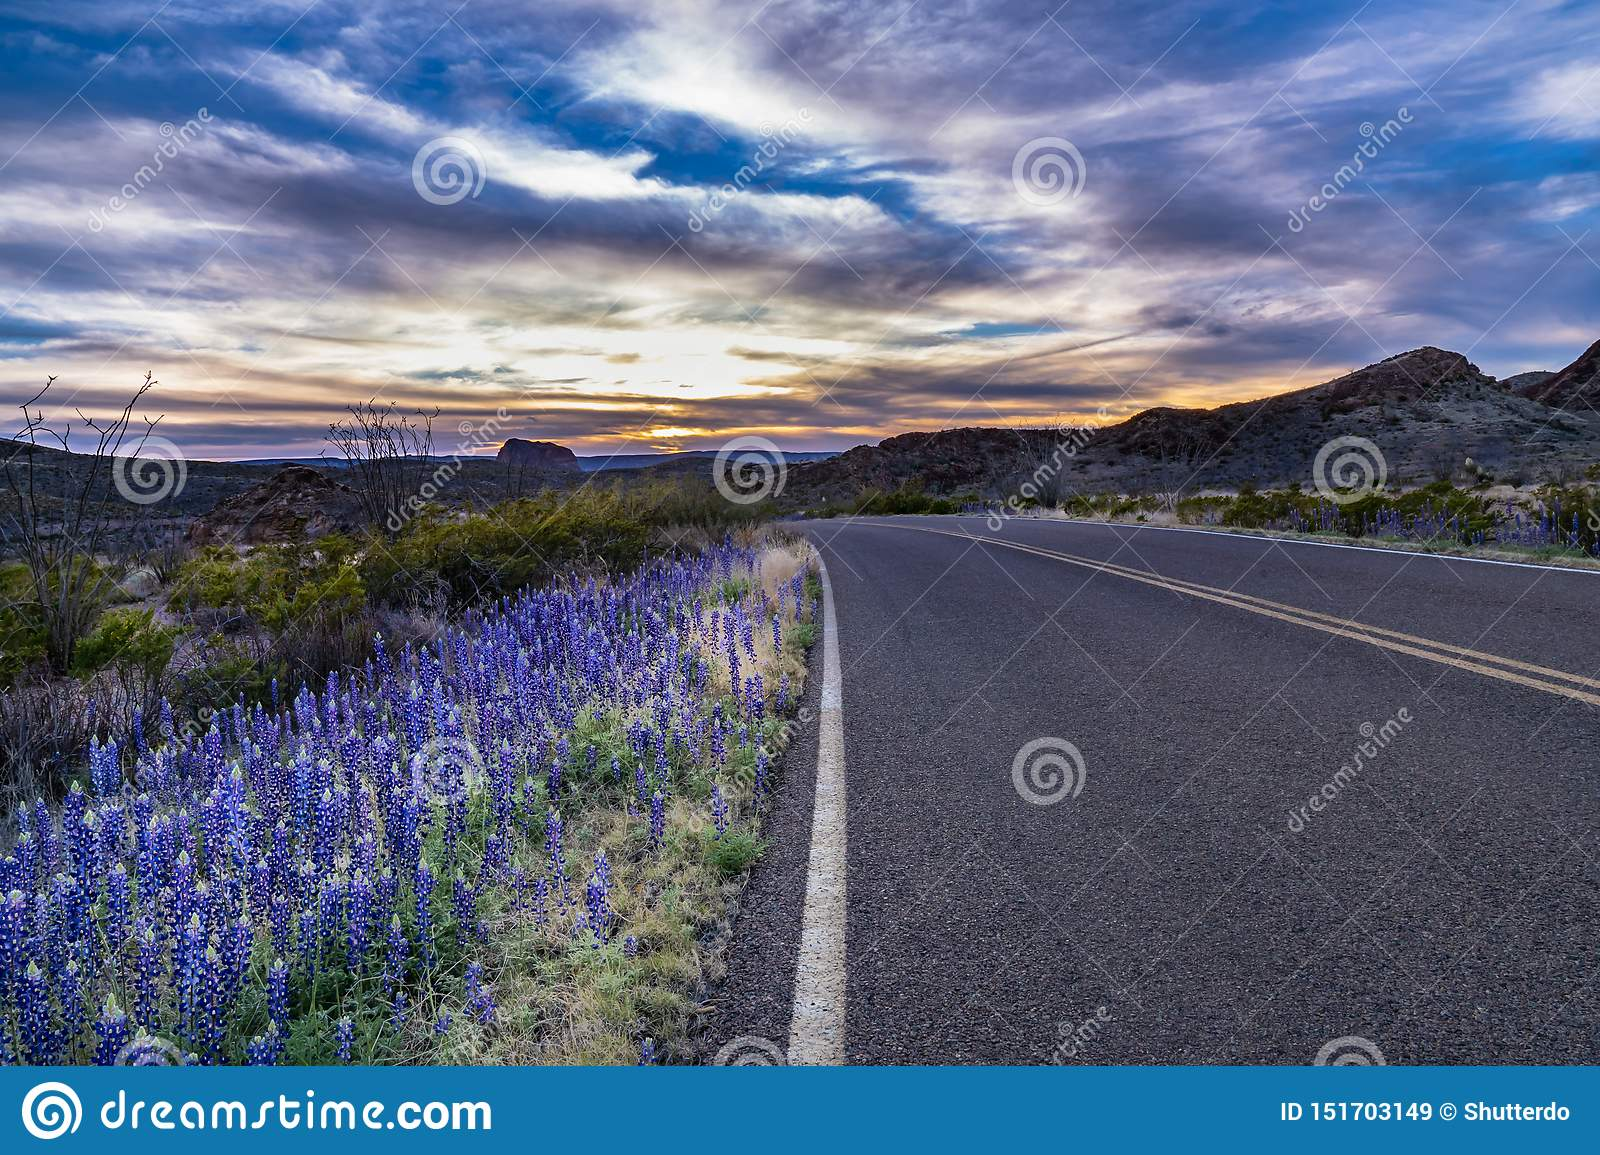 Sunset in Big Bend with blue bonnets along the road